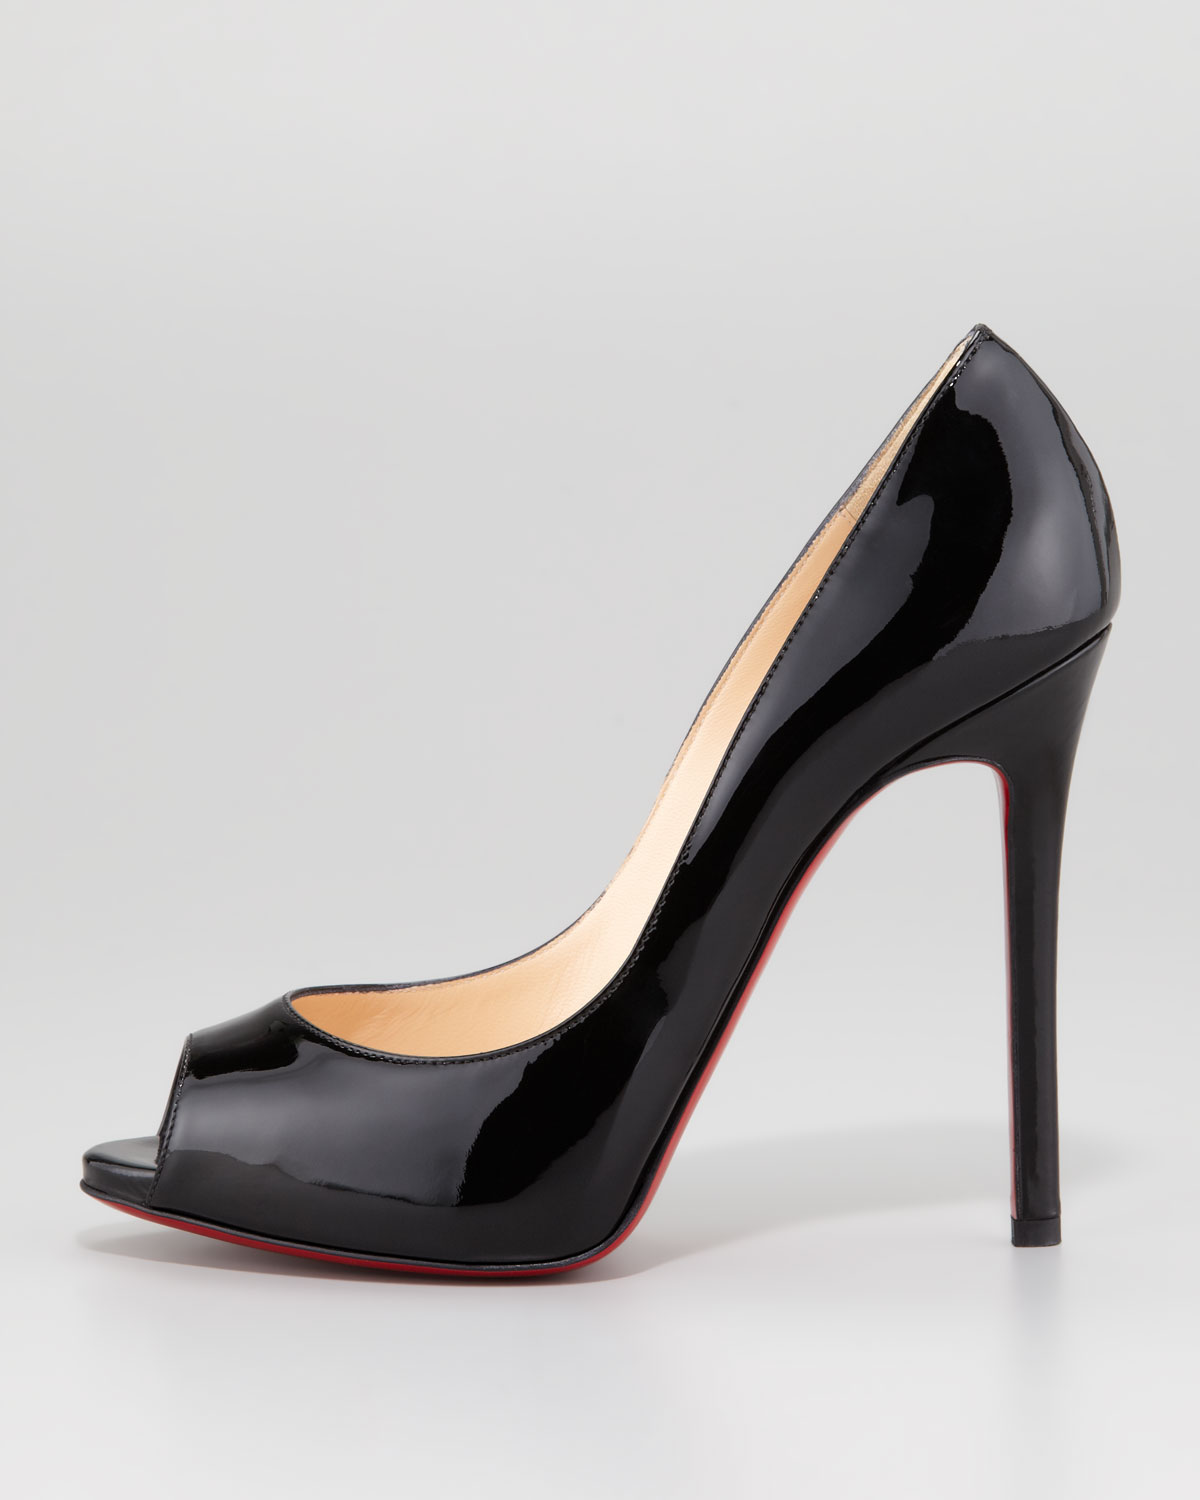 Lyst Christian Louboutin Flo Patent Leather Red Sole